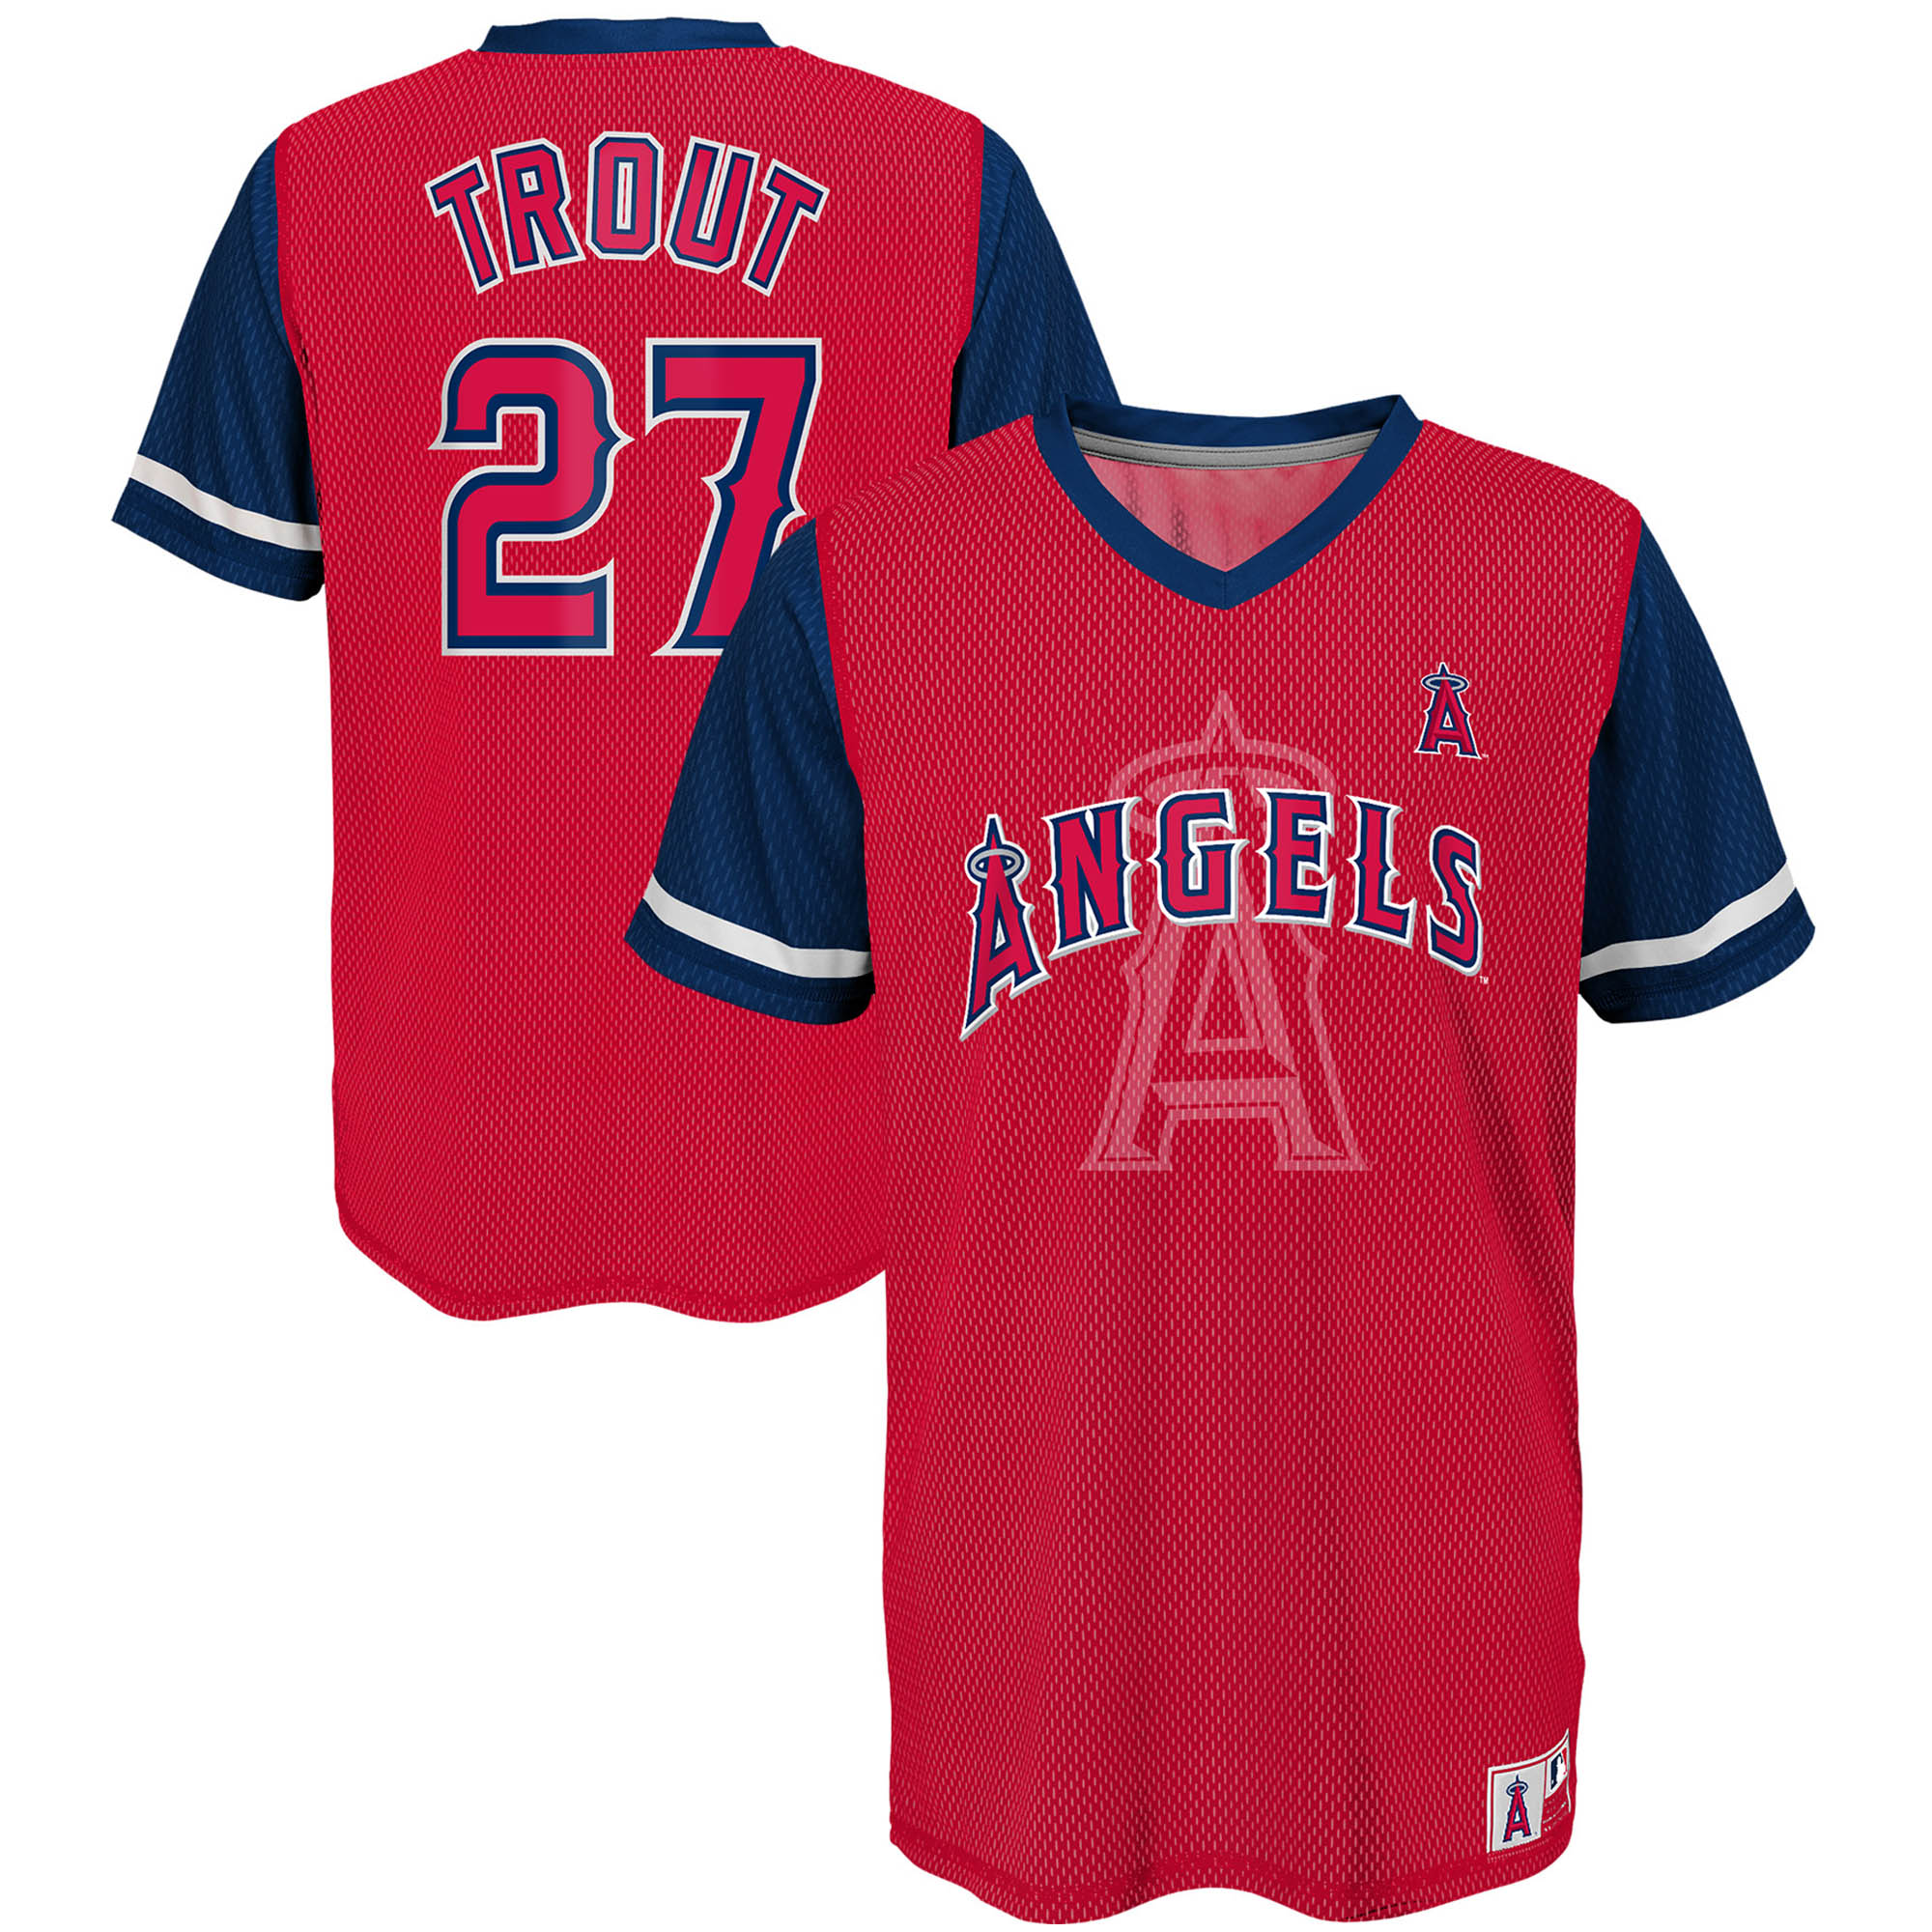 Mike Trout Los Angeles Angels Majestic Youth Play Hard Player V-Neck Jersey T-Shirt - Red/Navy